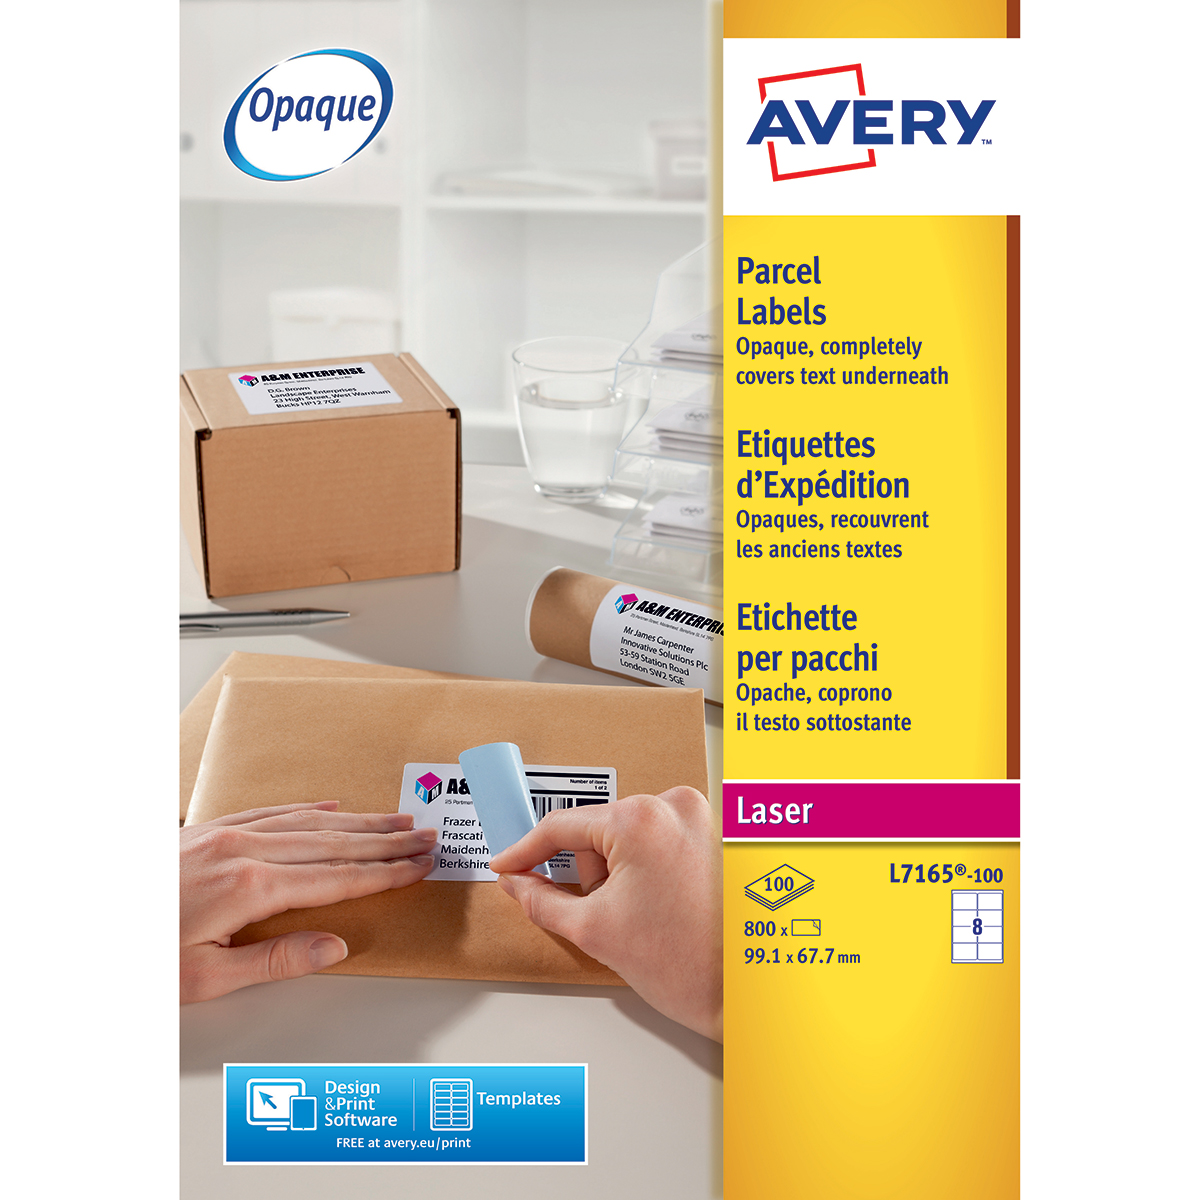 Avery L7165-100 Parcel Labels 100 sheets - 8 Labels per Sheet